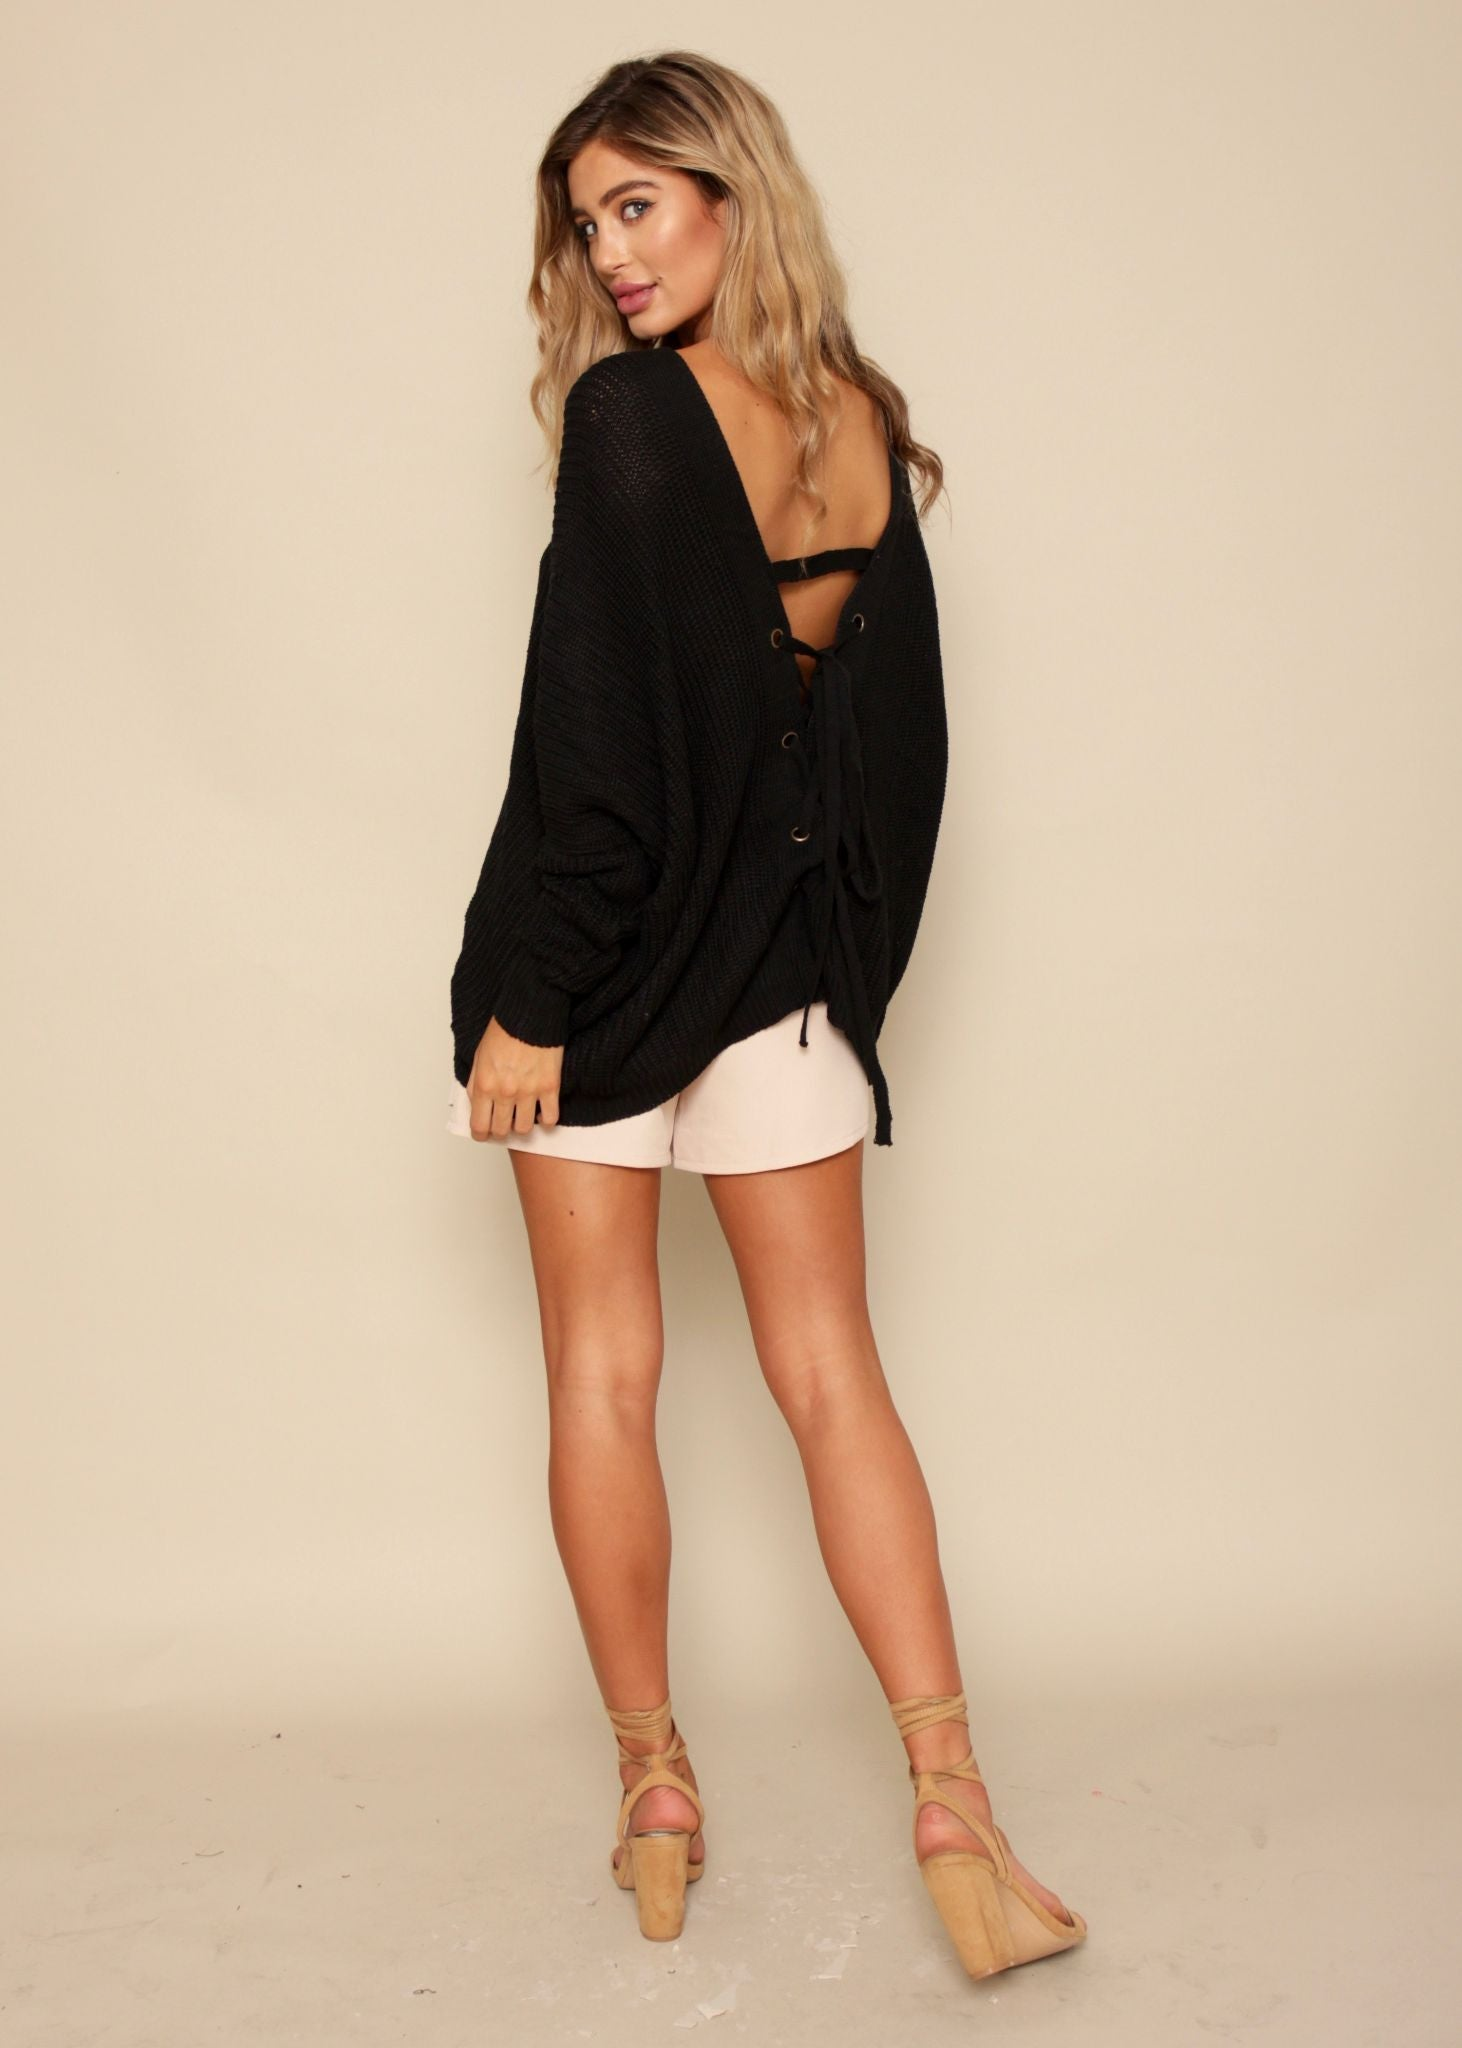 Right Direction Sweater - Black